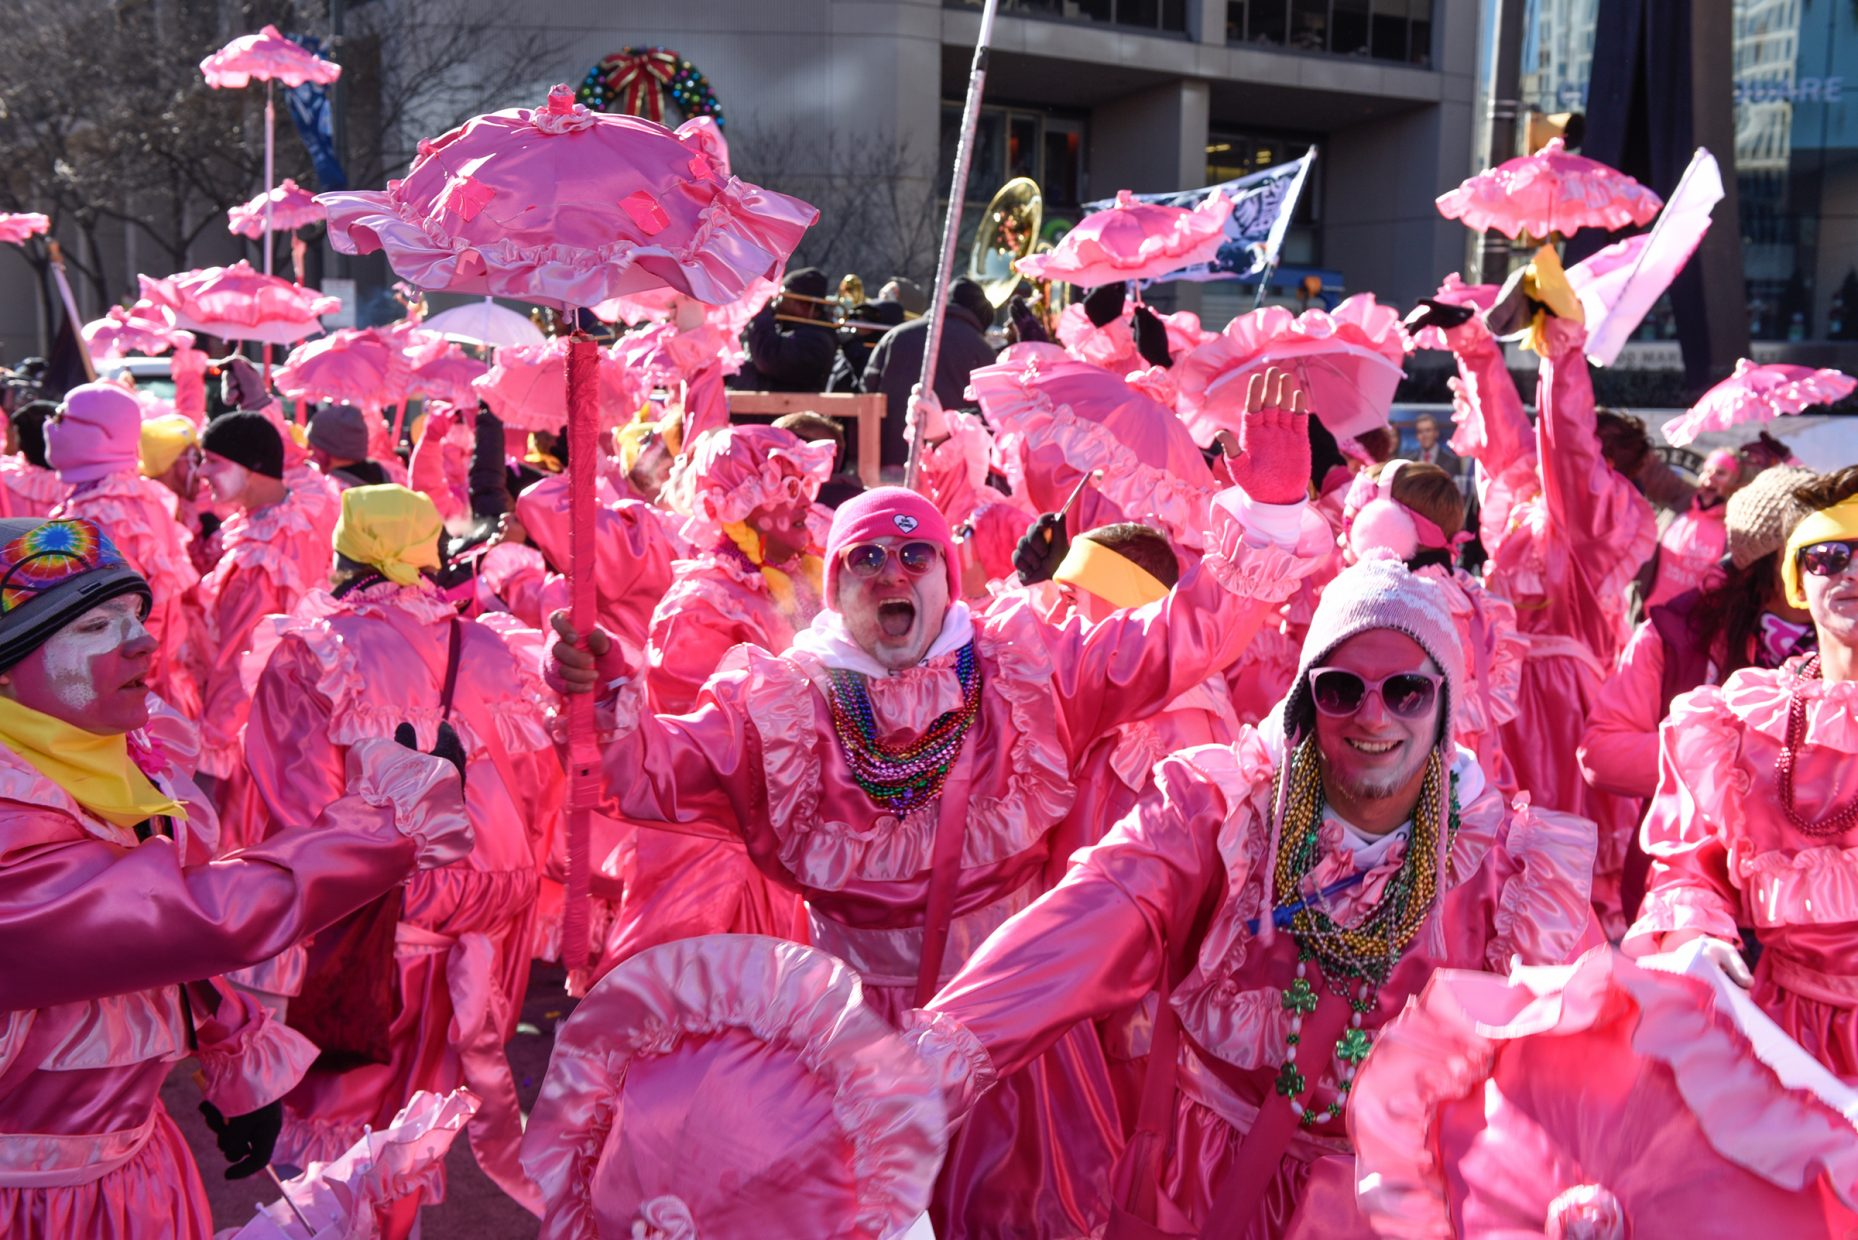 Mummers dancing in pink outfits with umbrellas on New Years Day 2018.